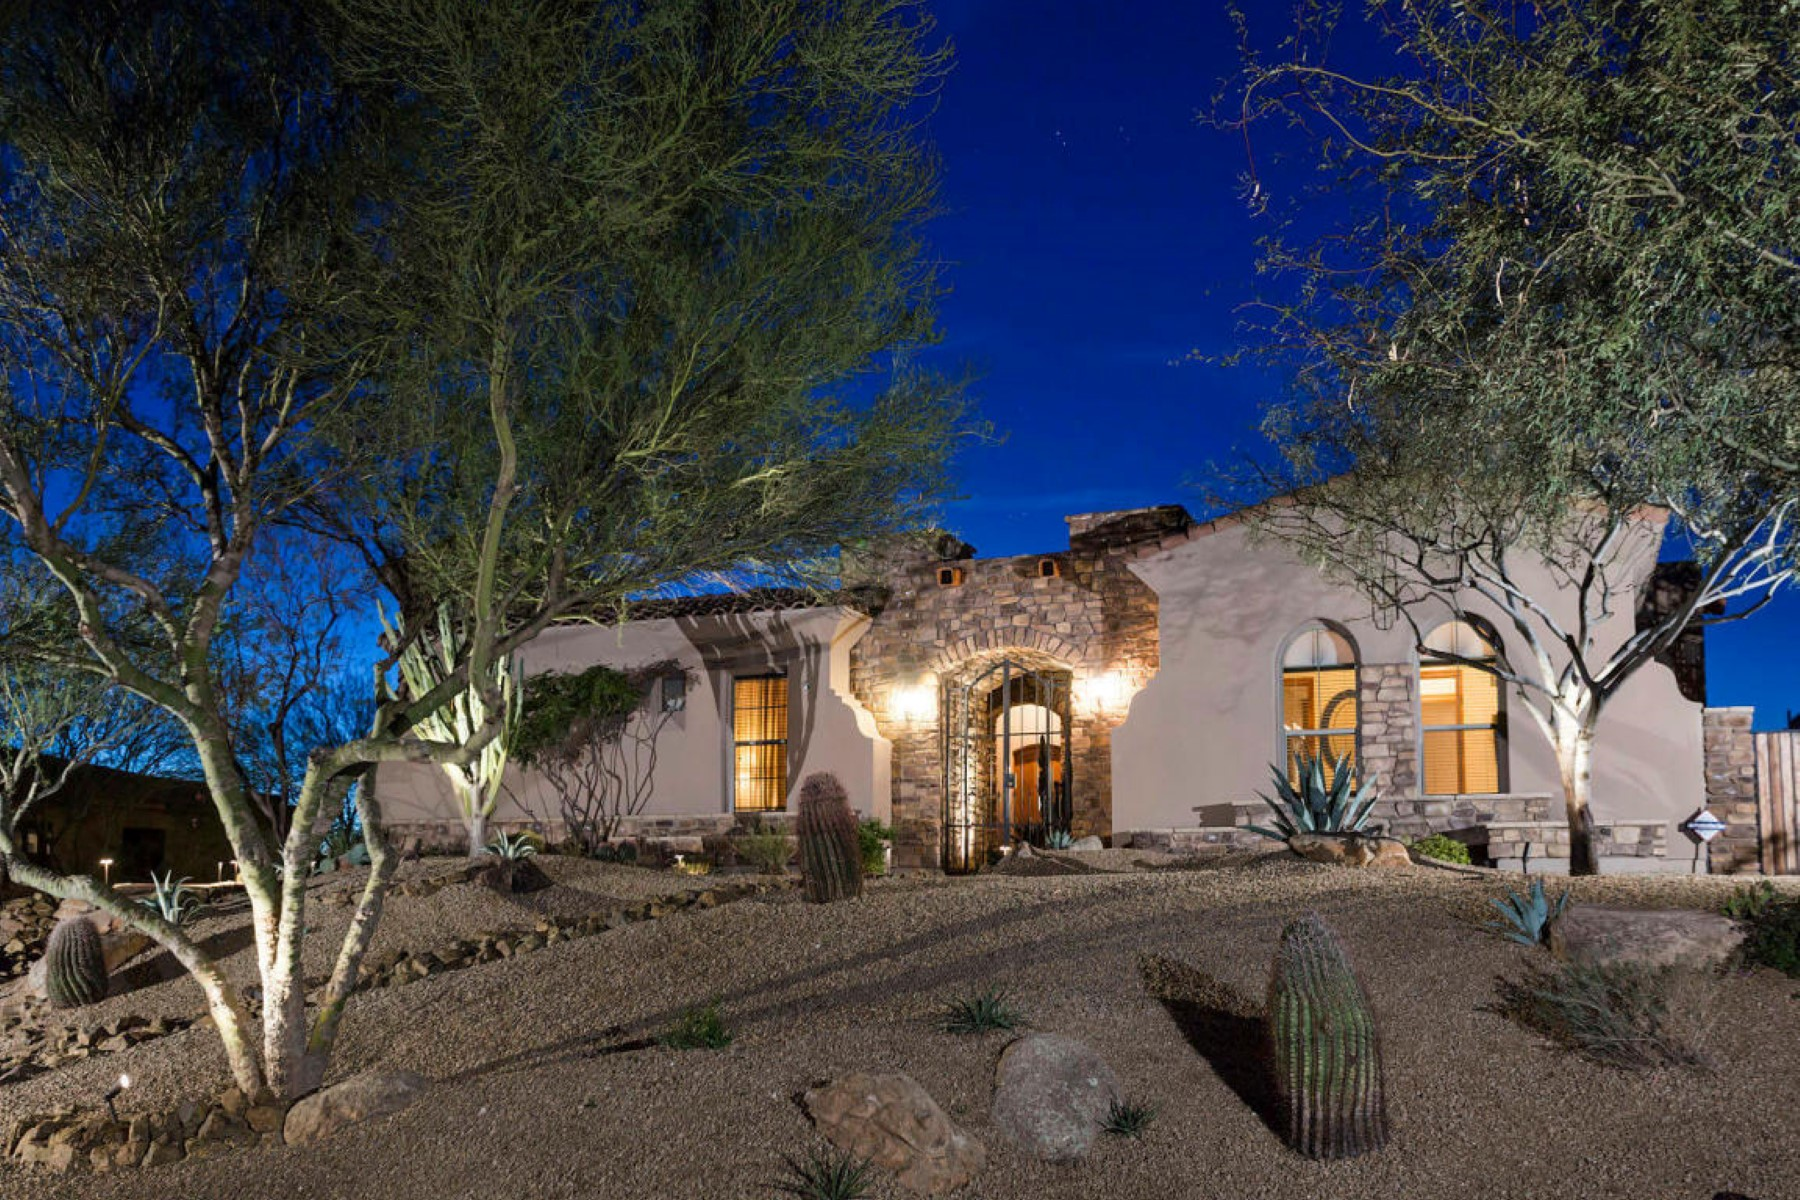 Single Family Home for Sale at Gorgeous Custom home with sweeping mountain and city light views 36530 N BOULDER VIEW DR Scottsdale, Arizona 85262 United States